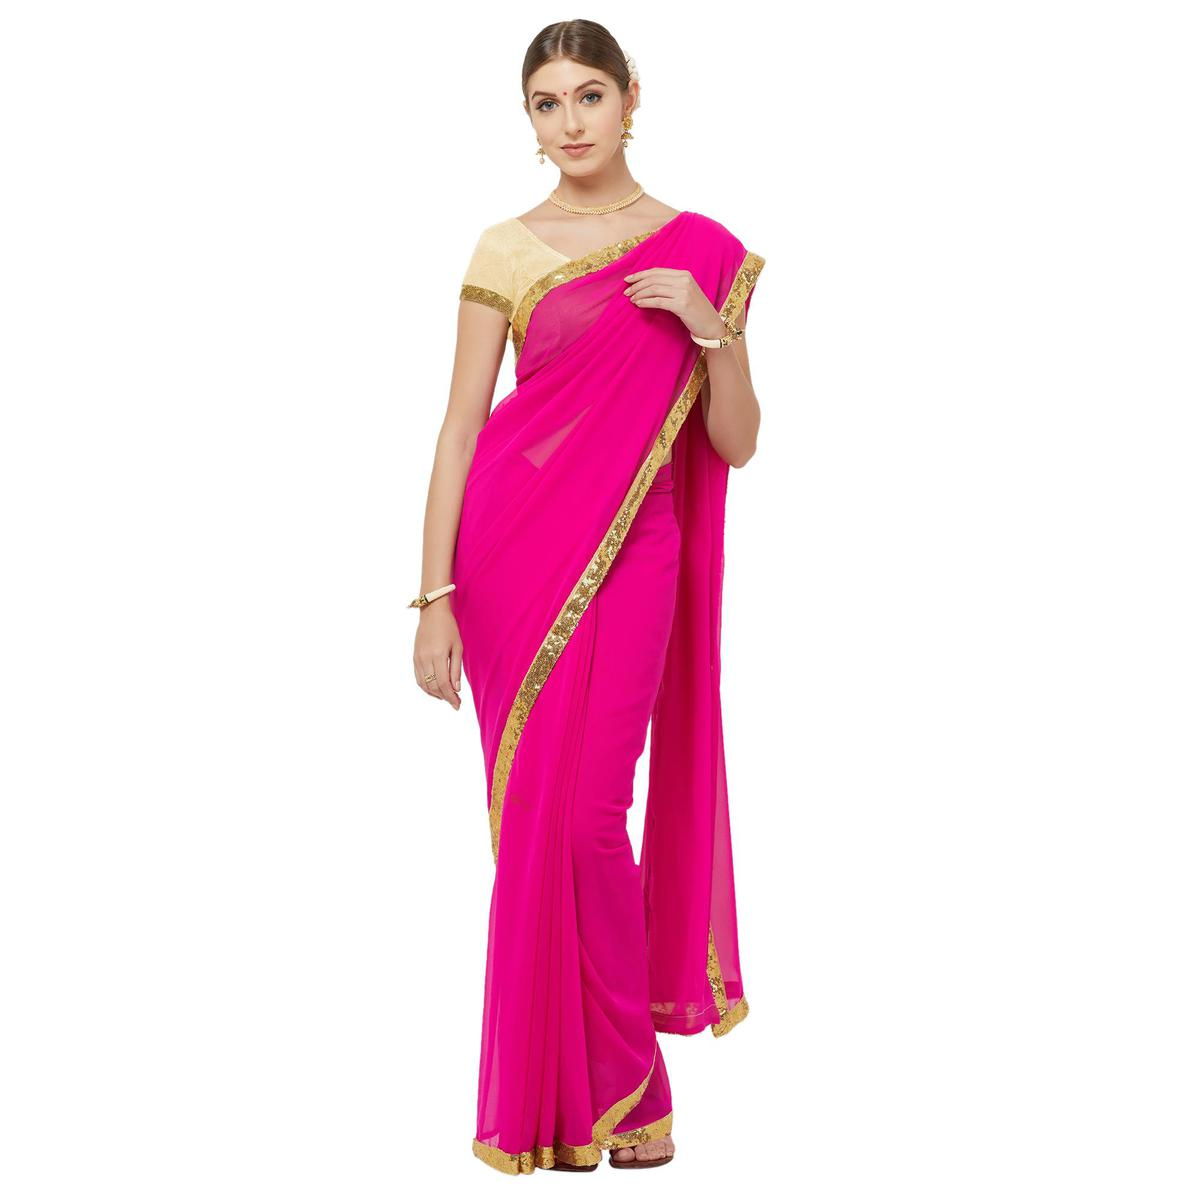 Adorning Red Colored Party Wear Georgette Saree With Matching Blouse.